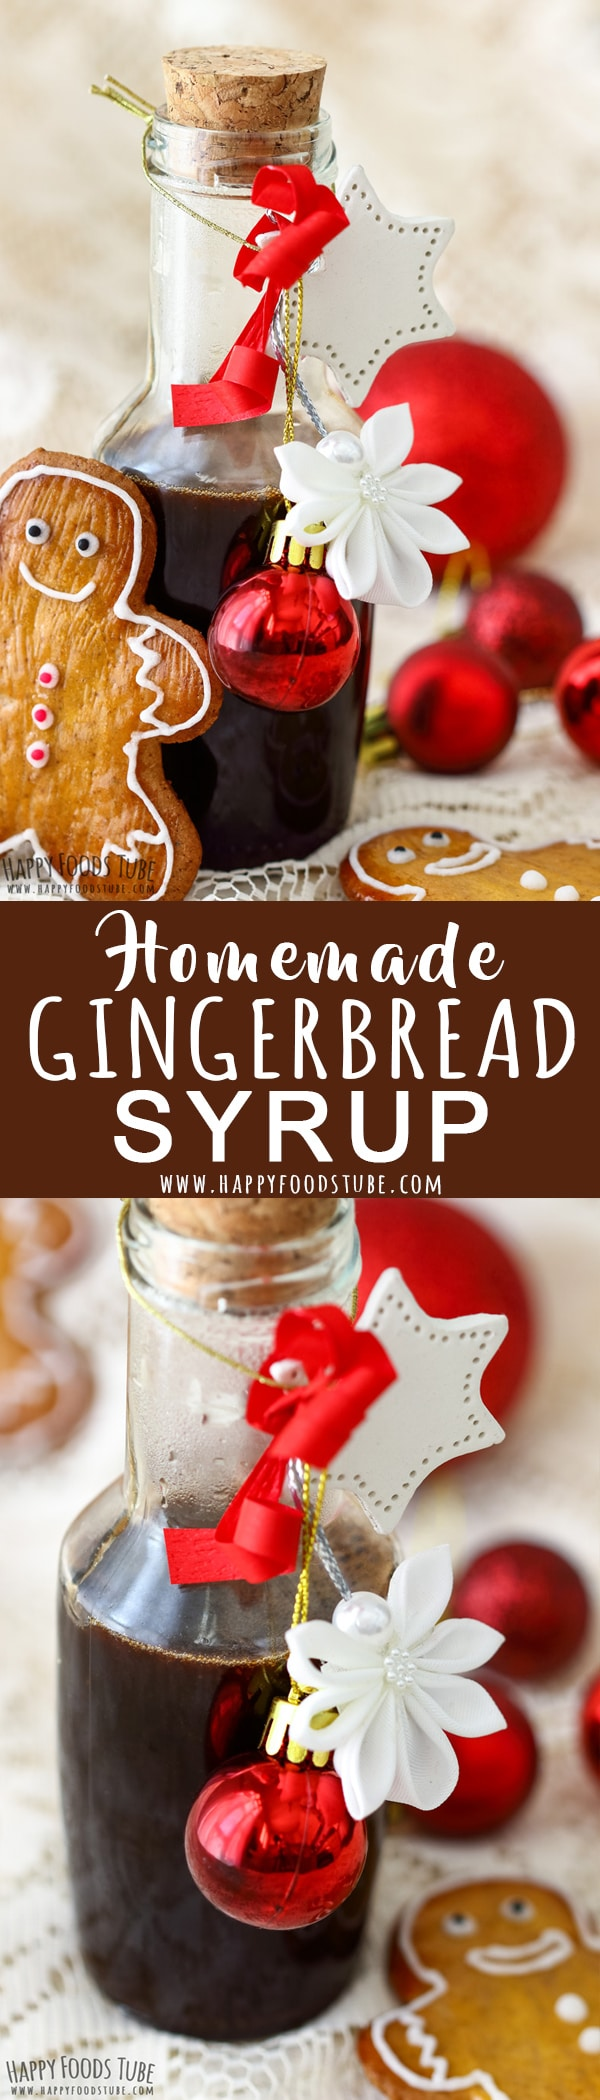 Love gingerbread flavor? Then you will fall in love with this homemade gingerbread syrup. It is all you need to flavor your pancakes, coffee, tea or crepes. Step by step how to make gingerbread syrup at home. #gingerbread #syrup #recipe #holidays #christmas #howtomake #homemade #coffee #pancakes